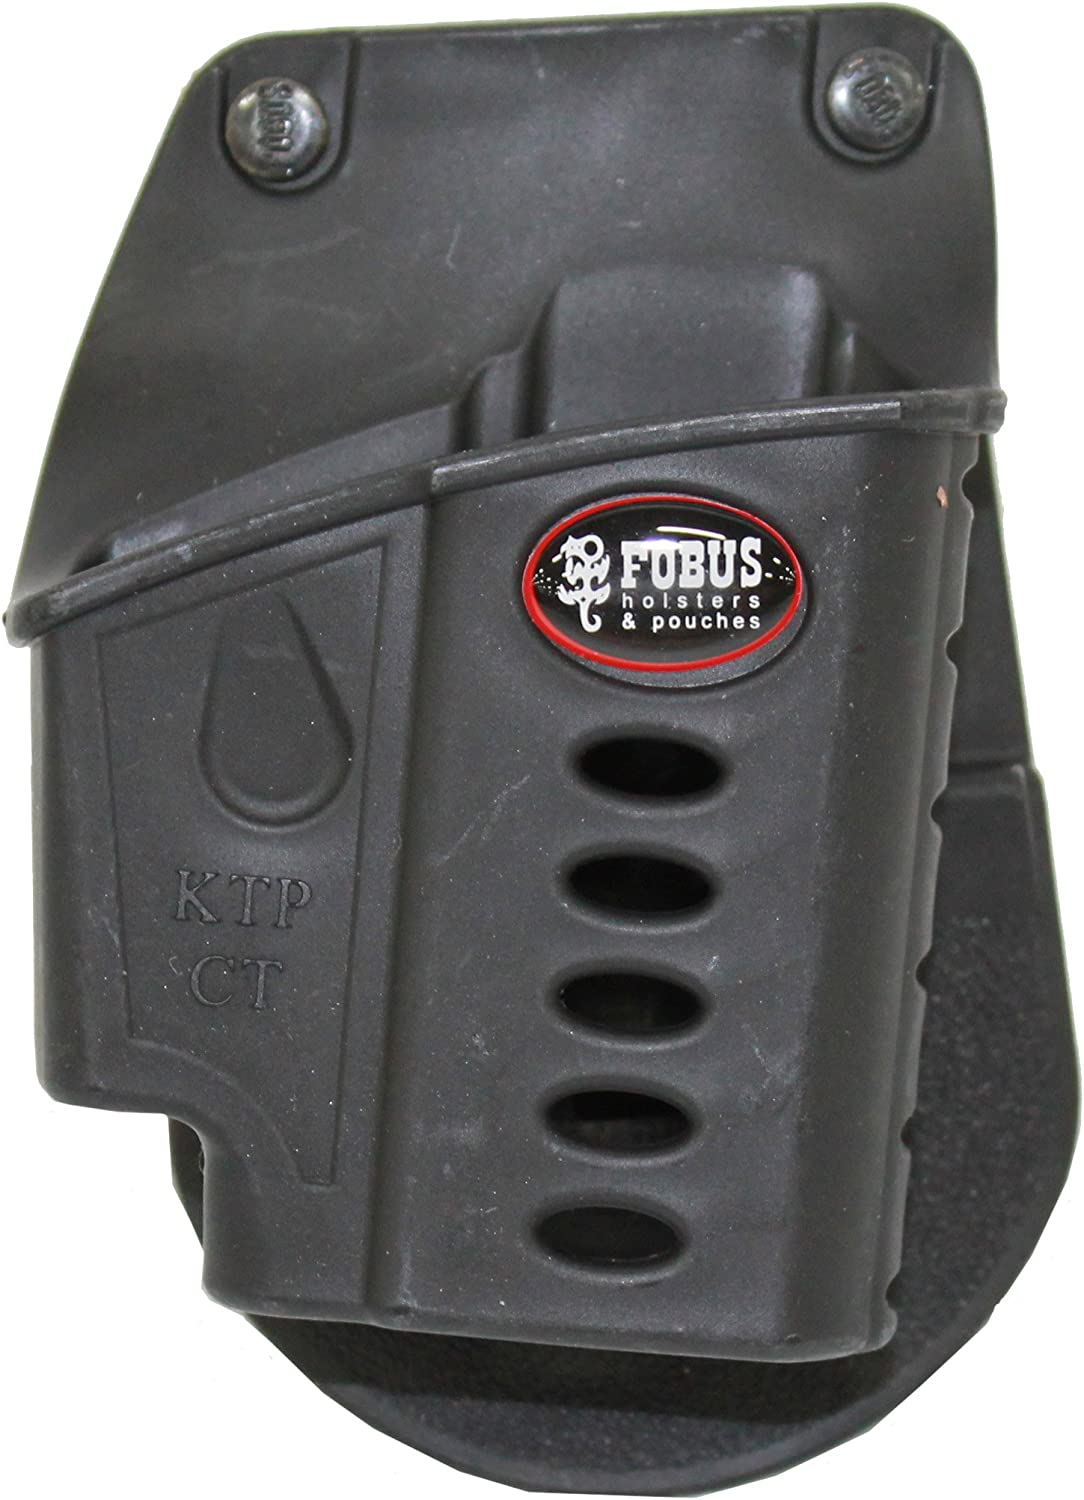 Fobus Ruger LCP KelTec P3At Evolution Paddle Holster, Black, Right